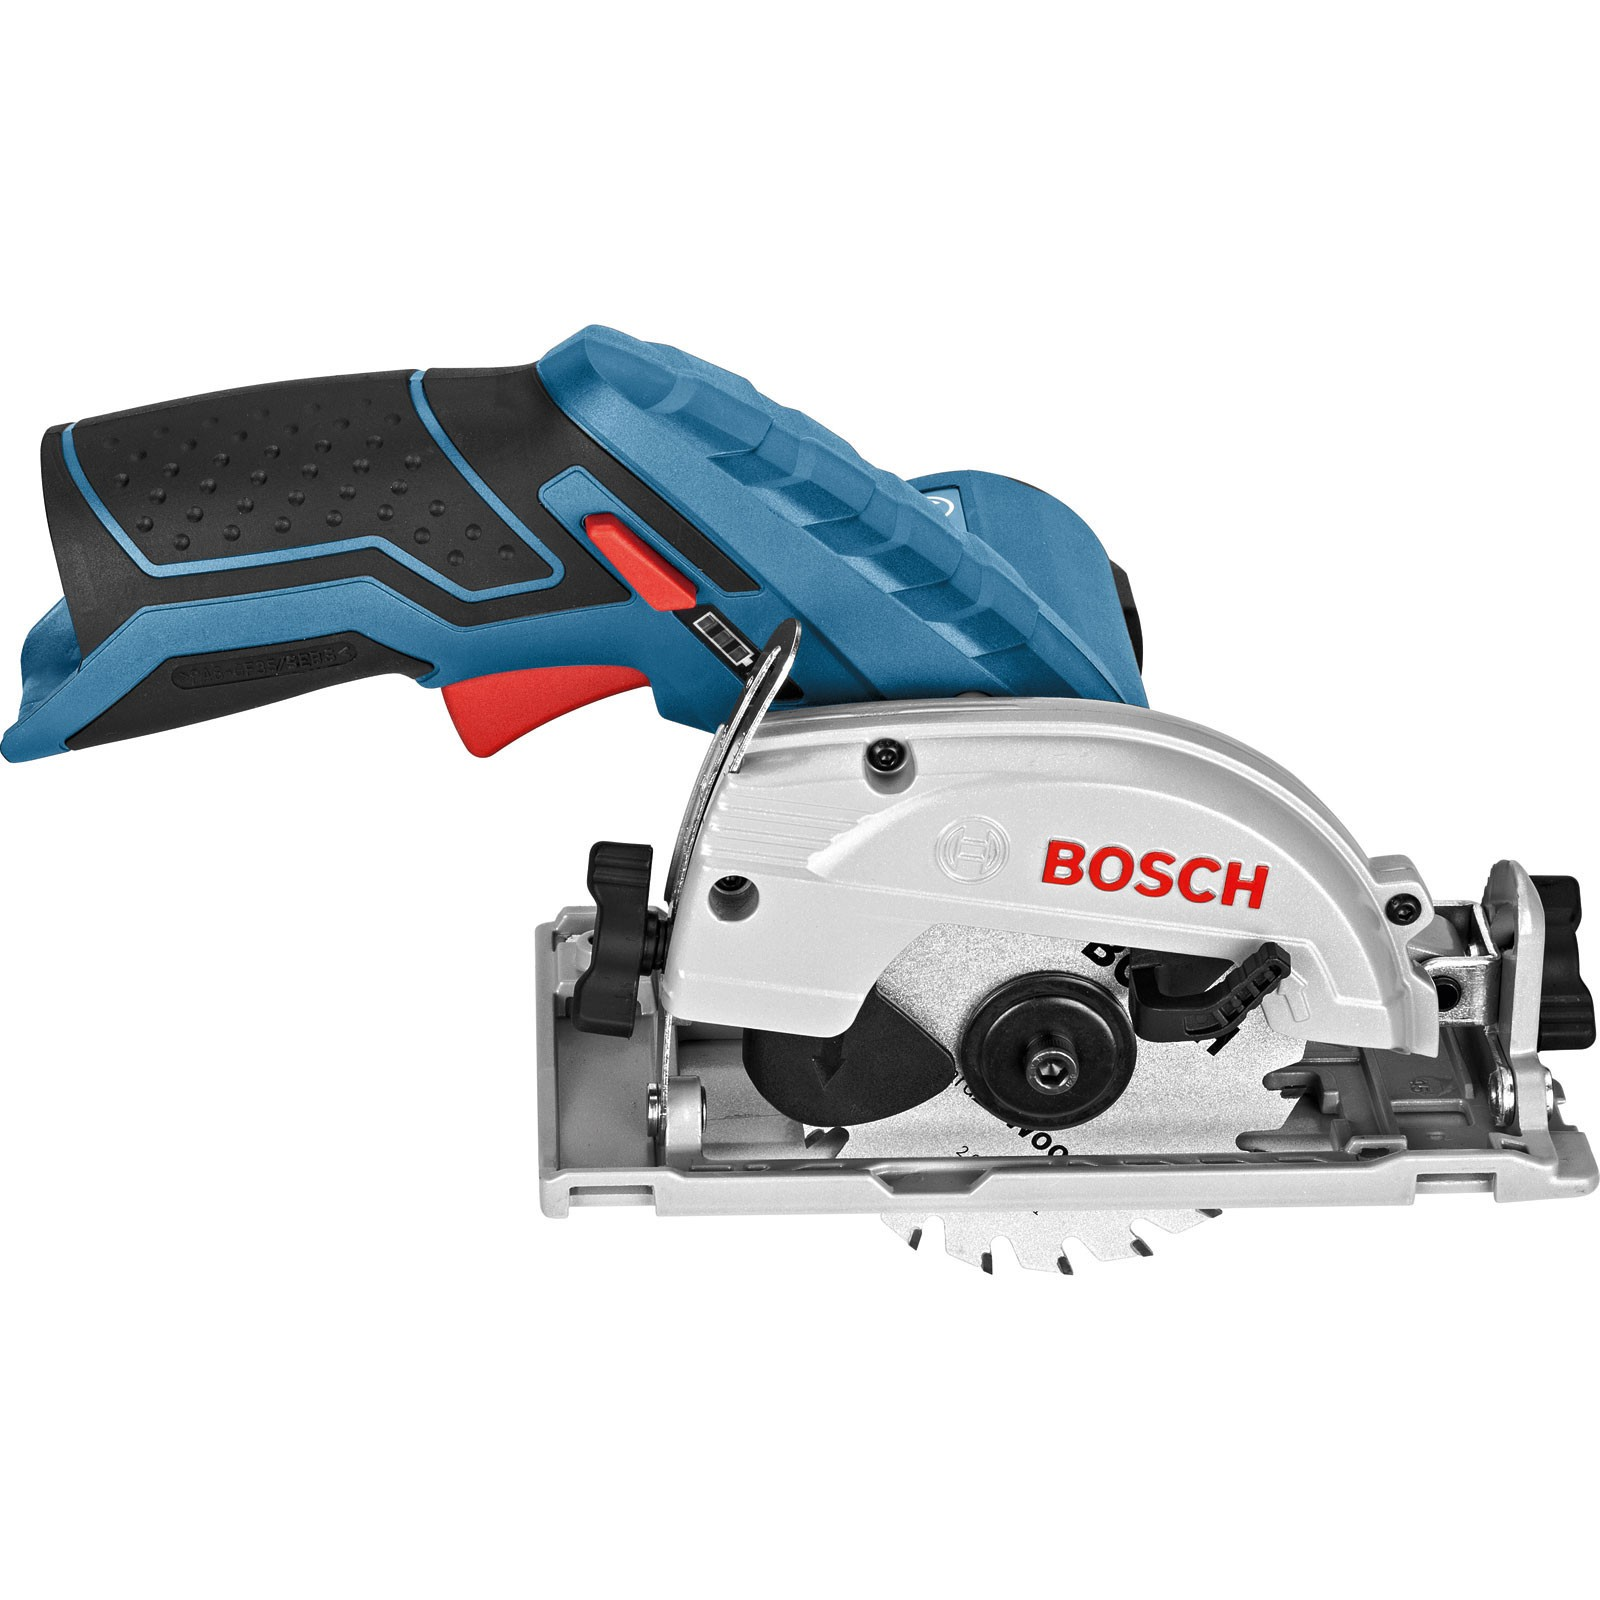 Bosch Gks 10 8 V Li 12v 26 Cordless Circular Saw Body